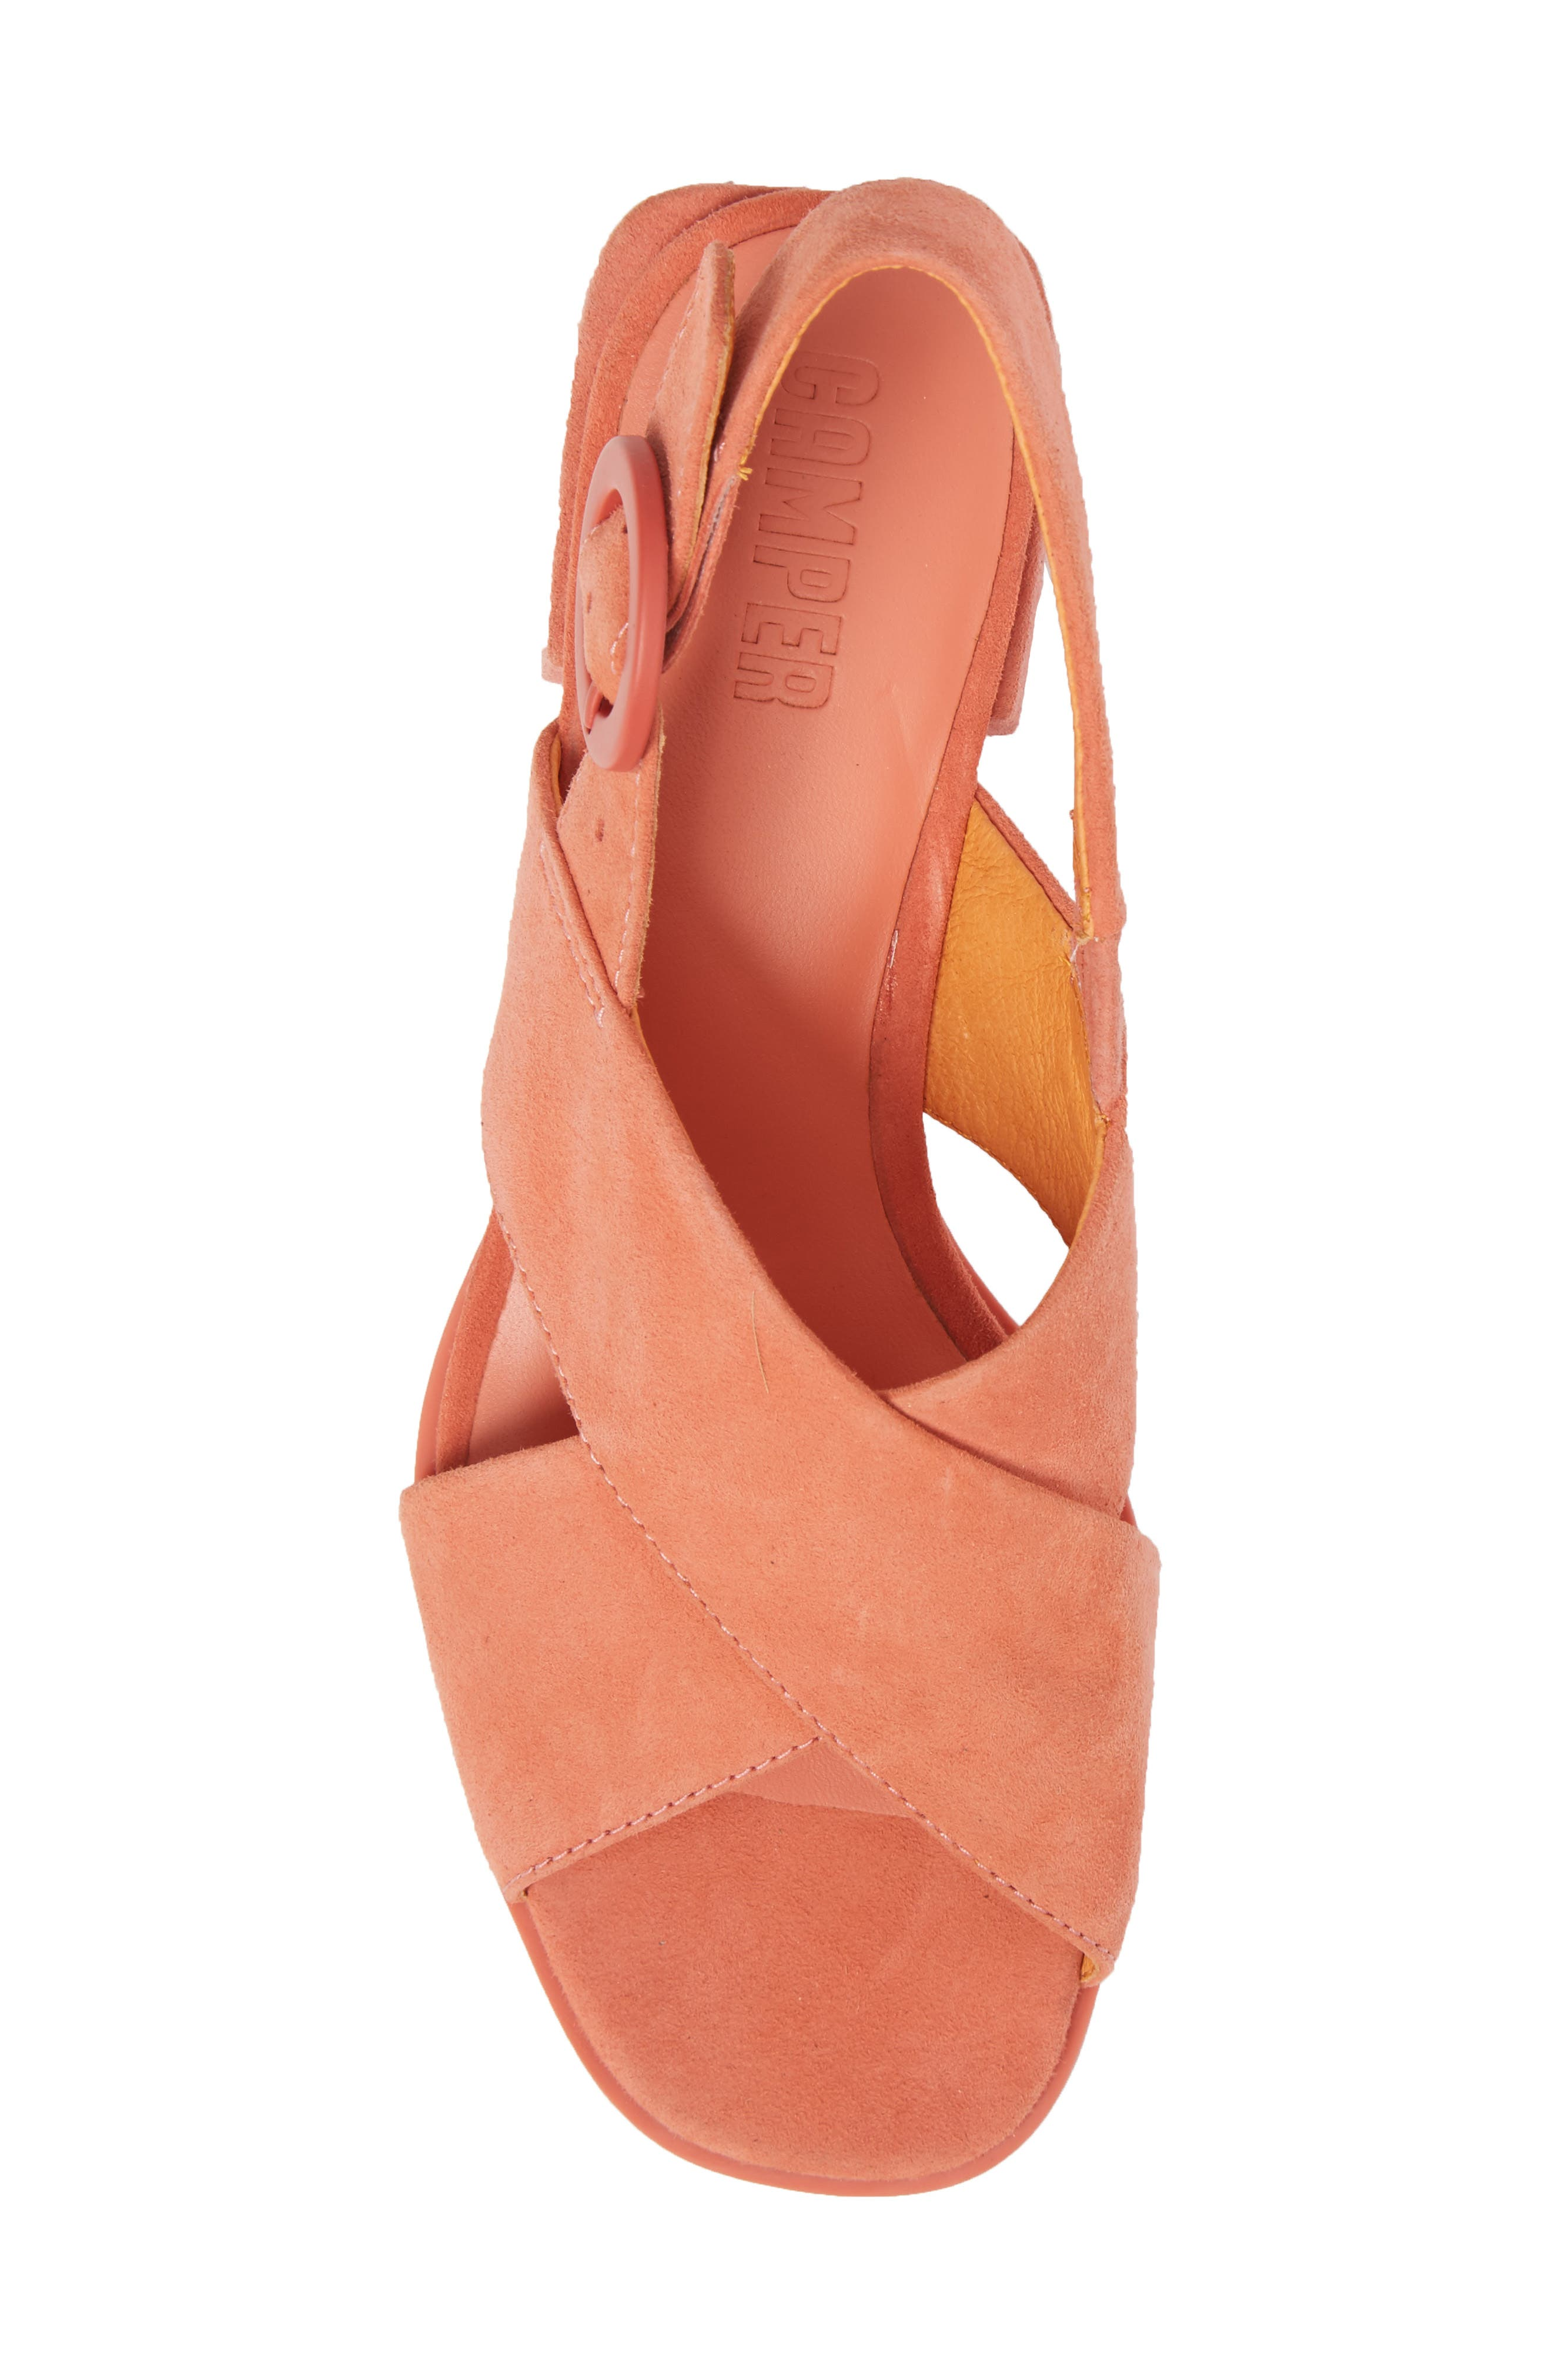 Kobo Cross Strap Sandal,                             Alternate thumbnail 5, color,                             MEDIUM PINK LEATHER